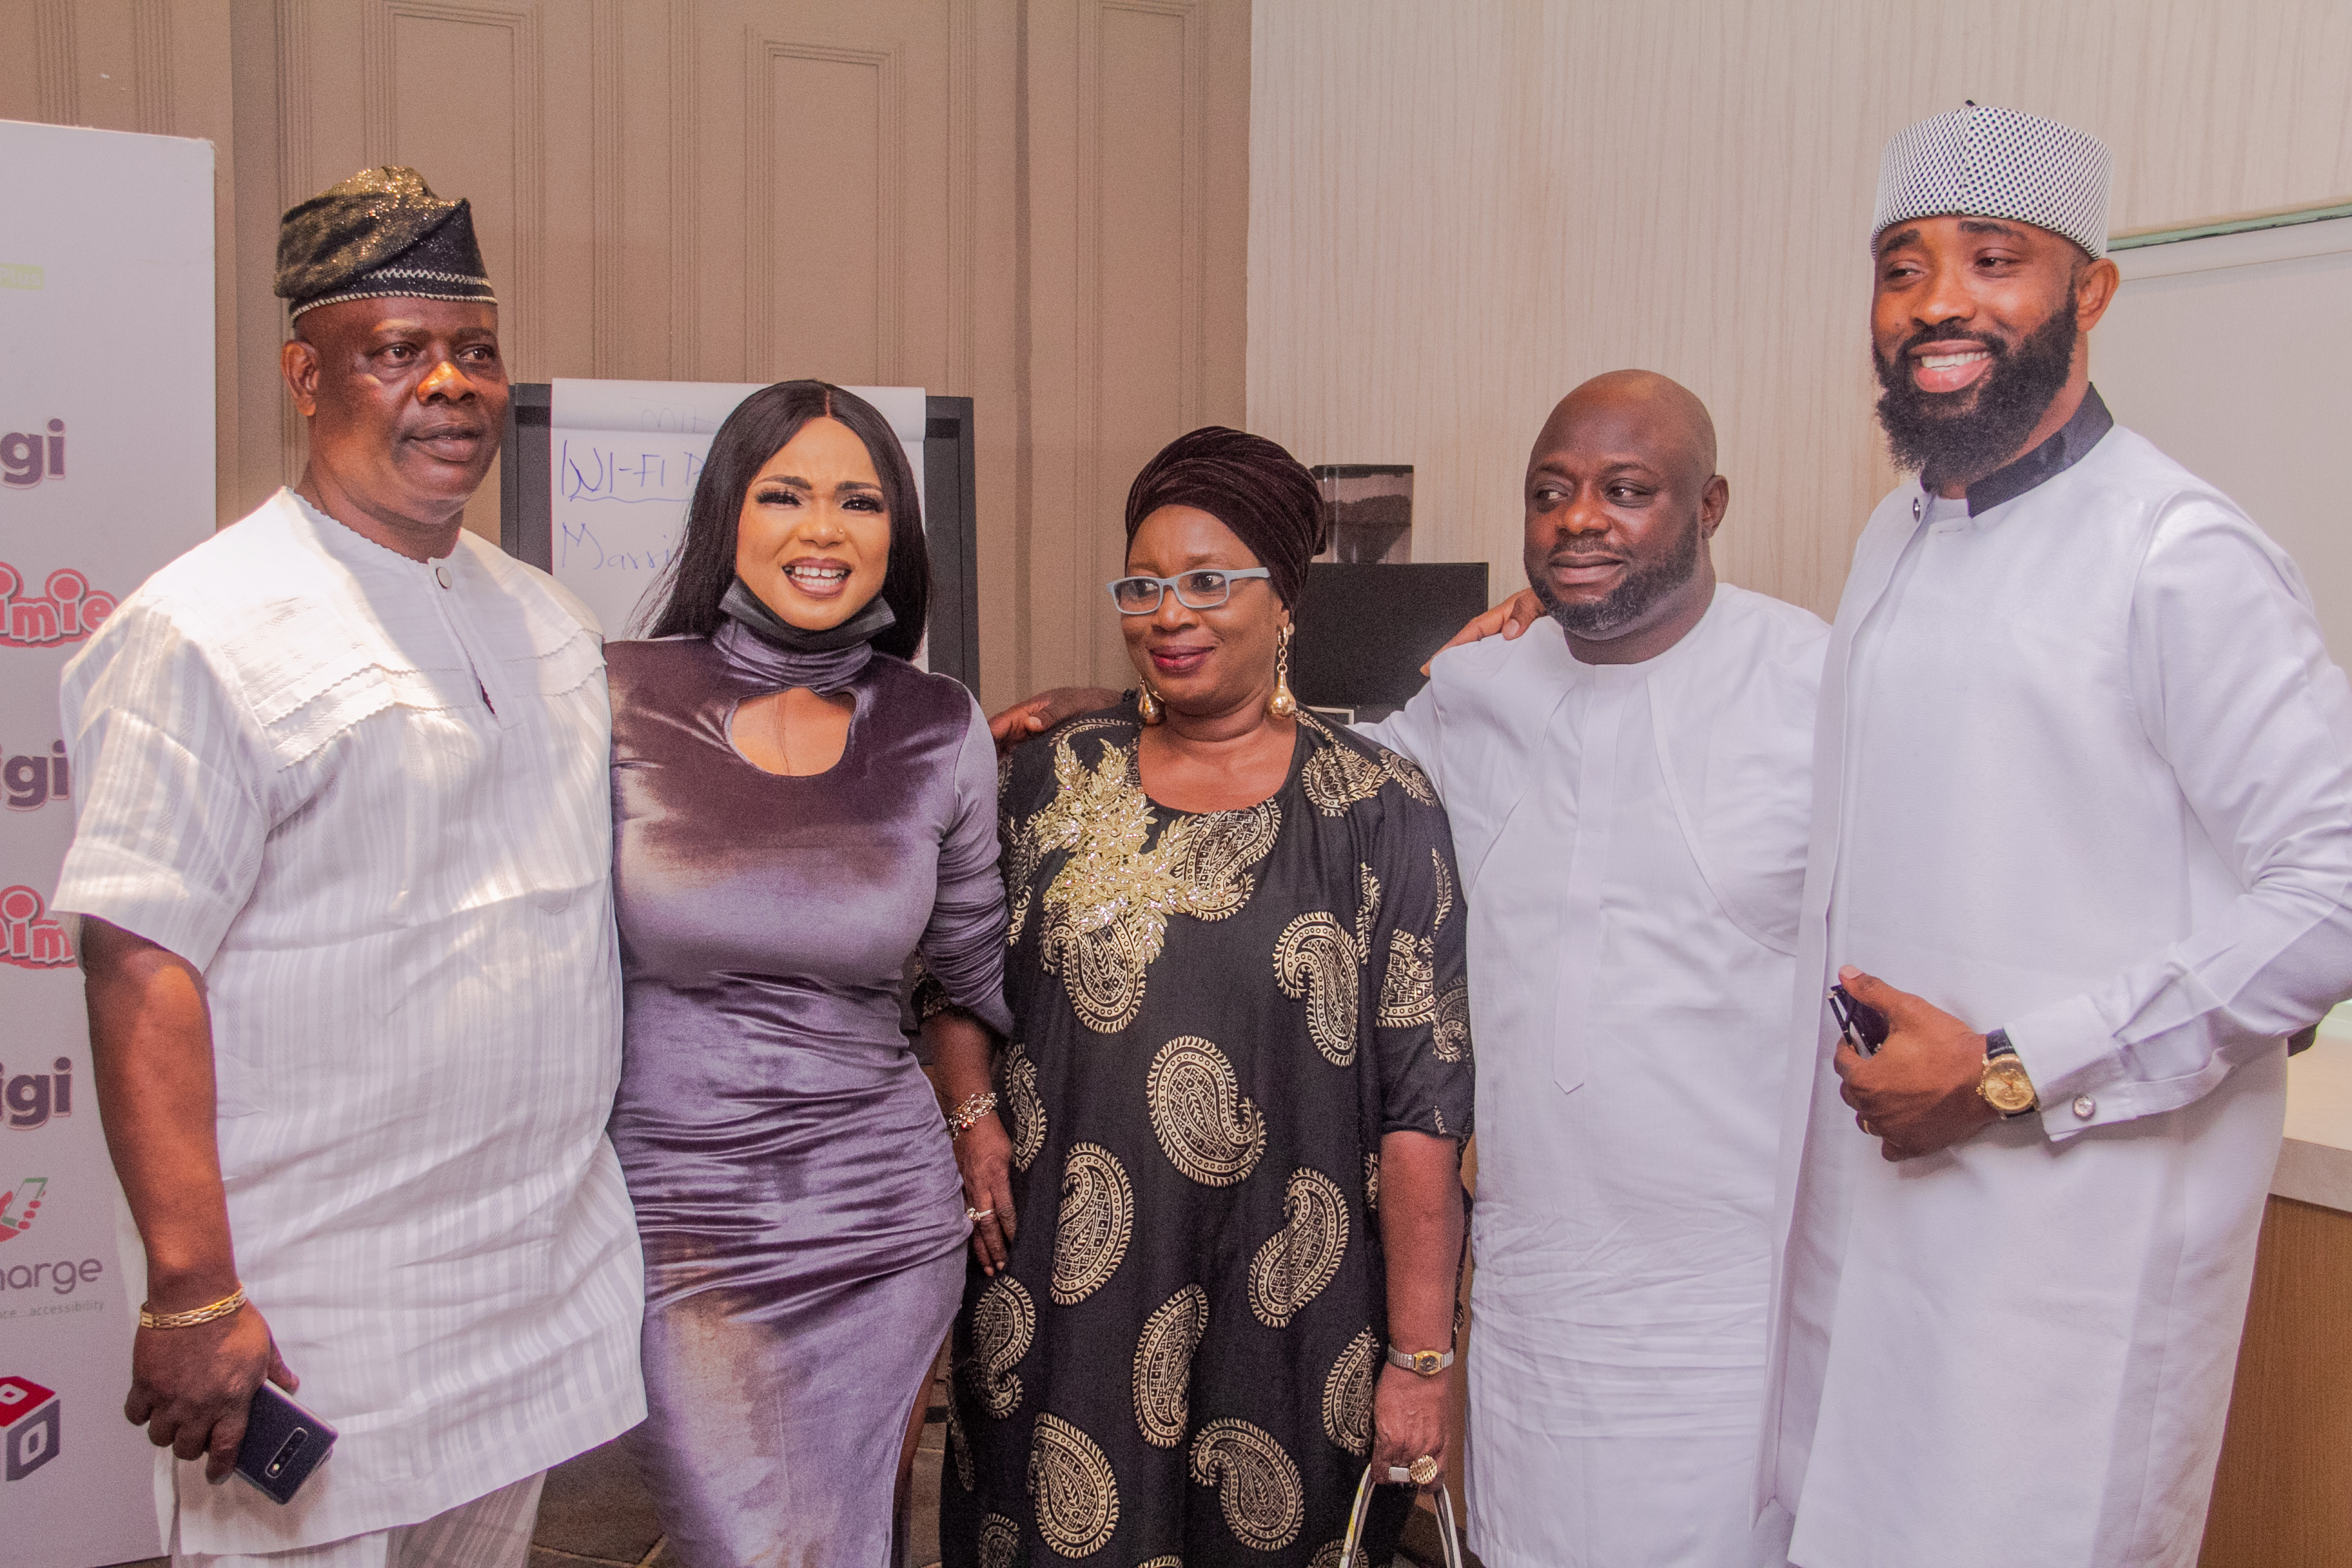 Top Nollywood Stars, StarTimes Team-up to Adapt 'Okirika' into Comedy